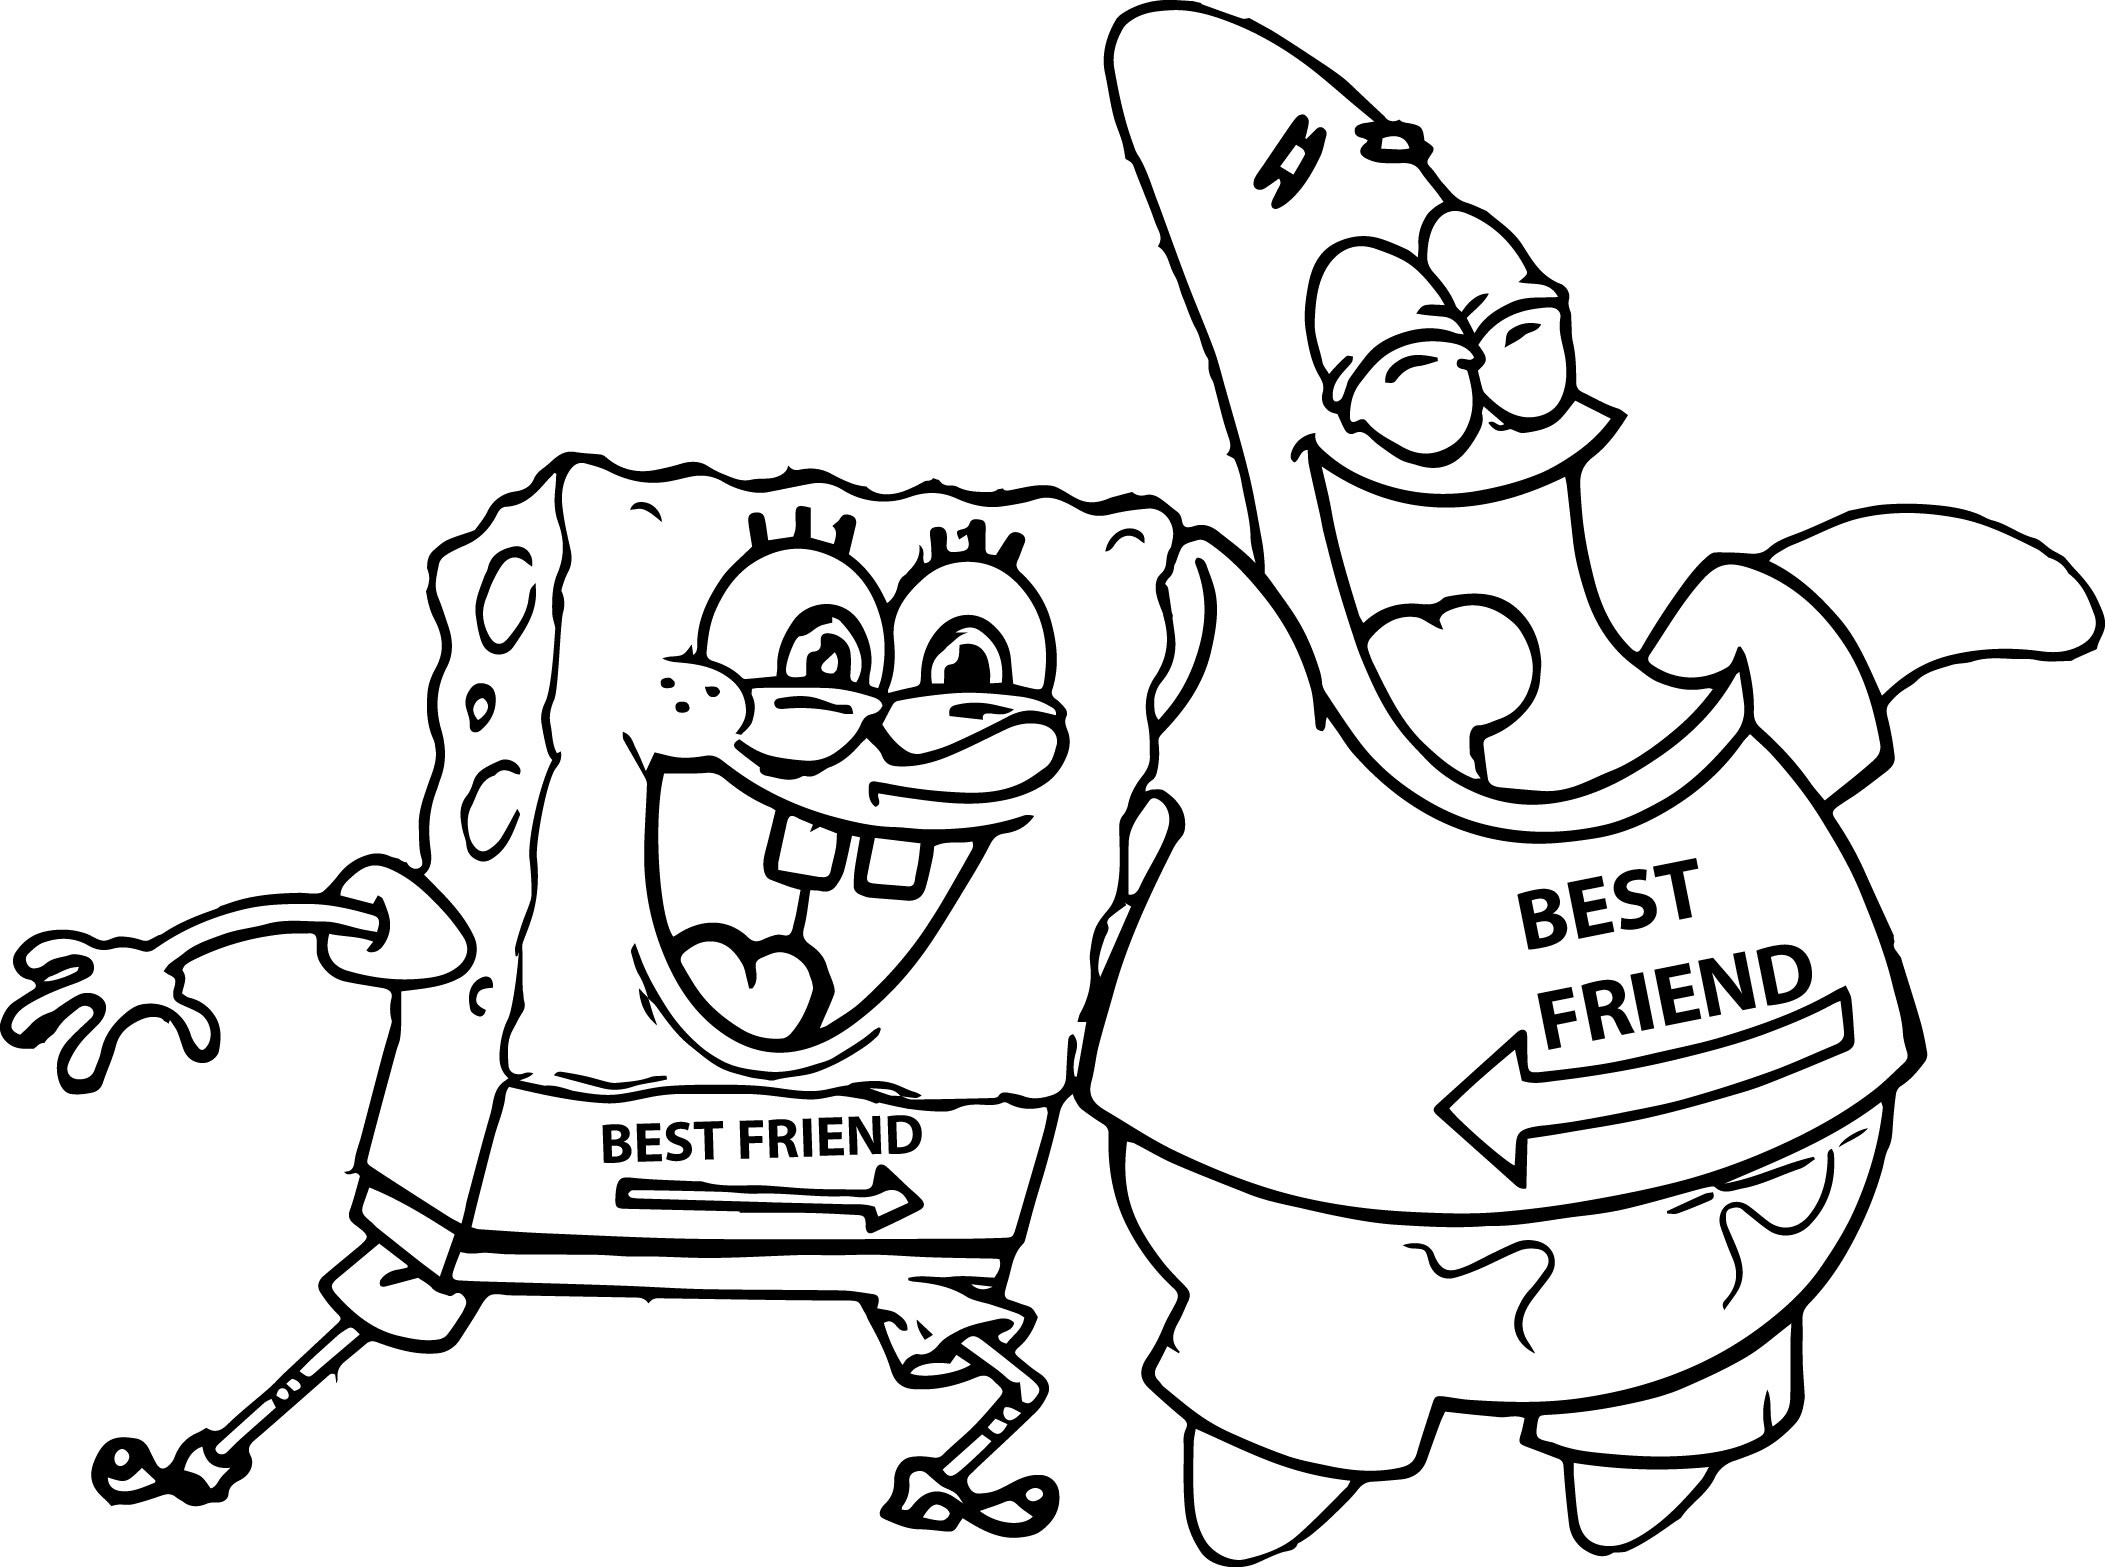 Friendship Drawing at GetDrawings.com | Free for personal use ...